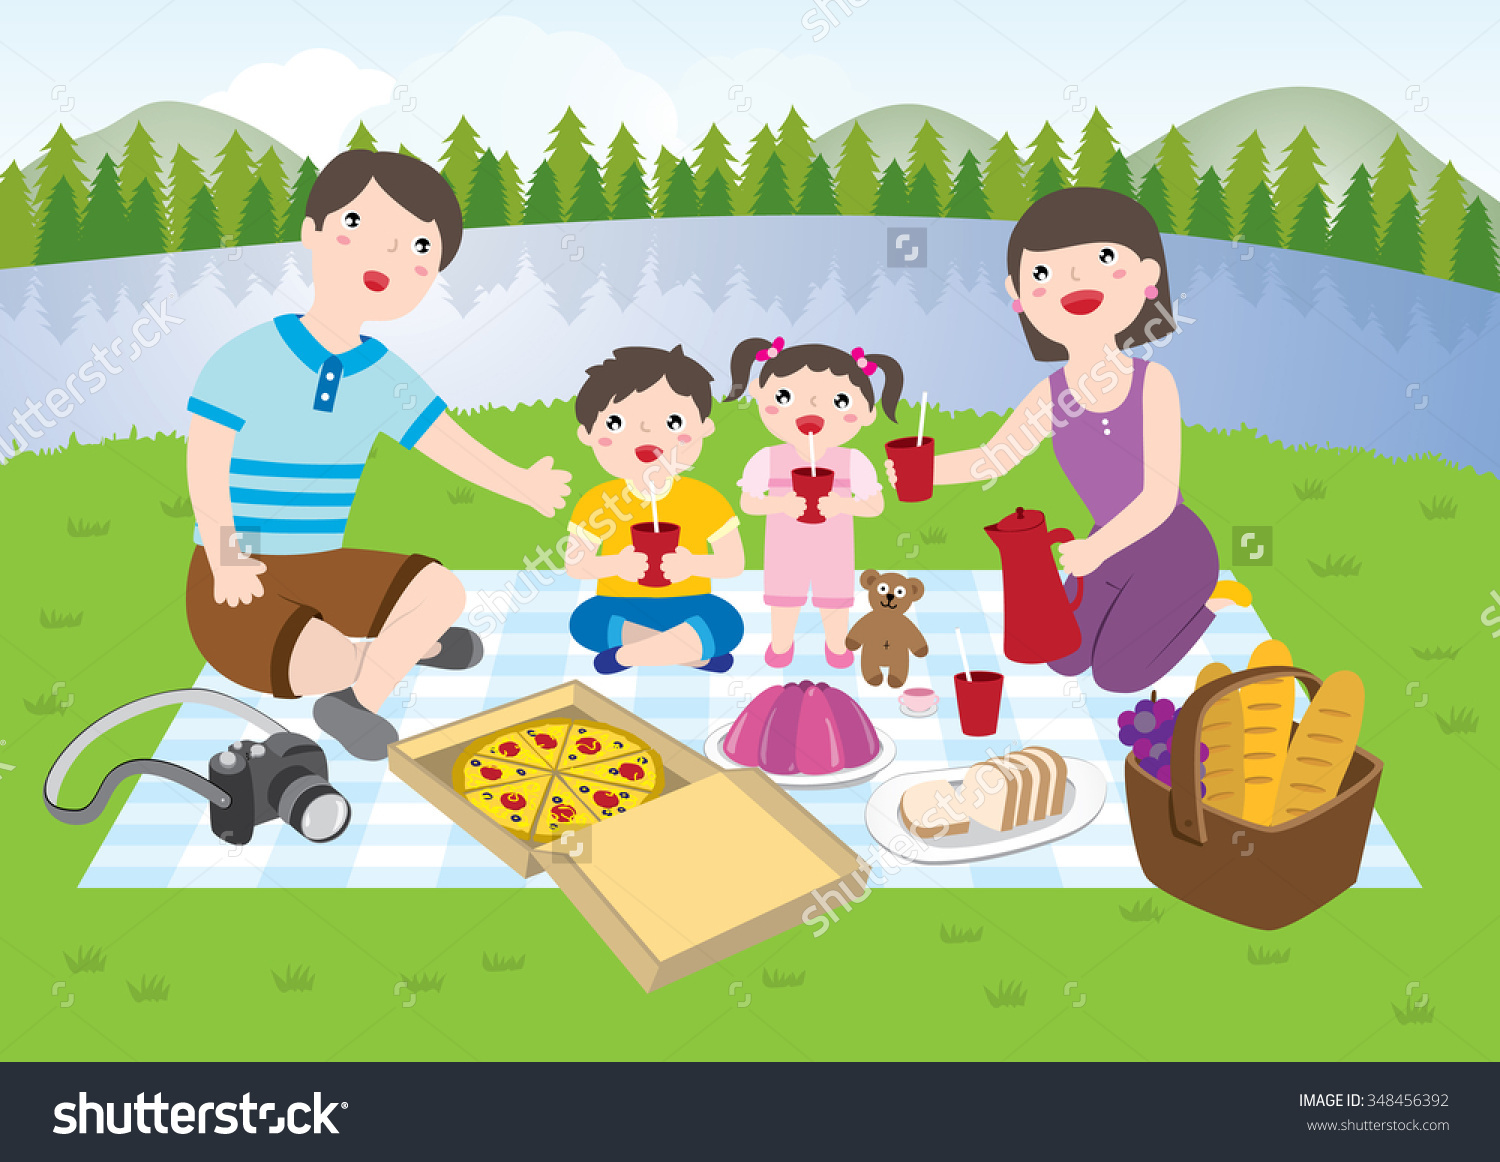 Picnic clipart playground Free the Picnic park Art